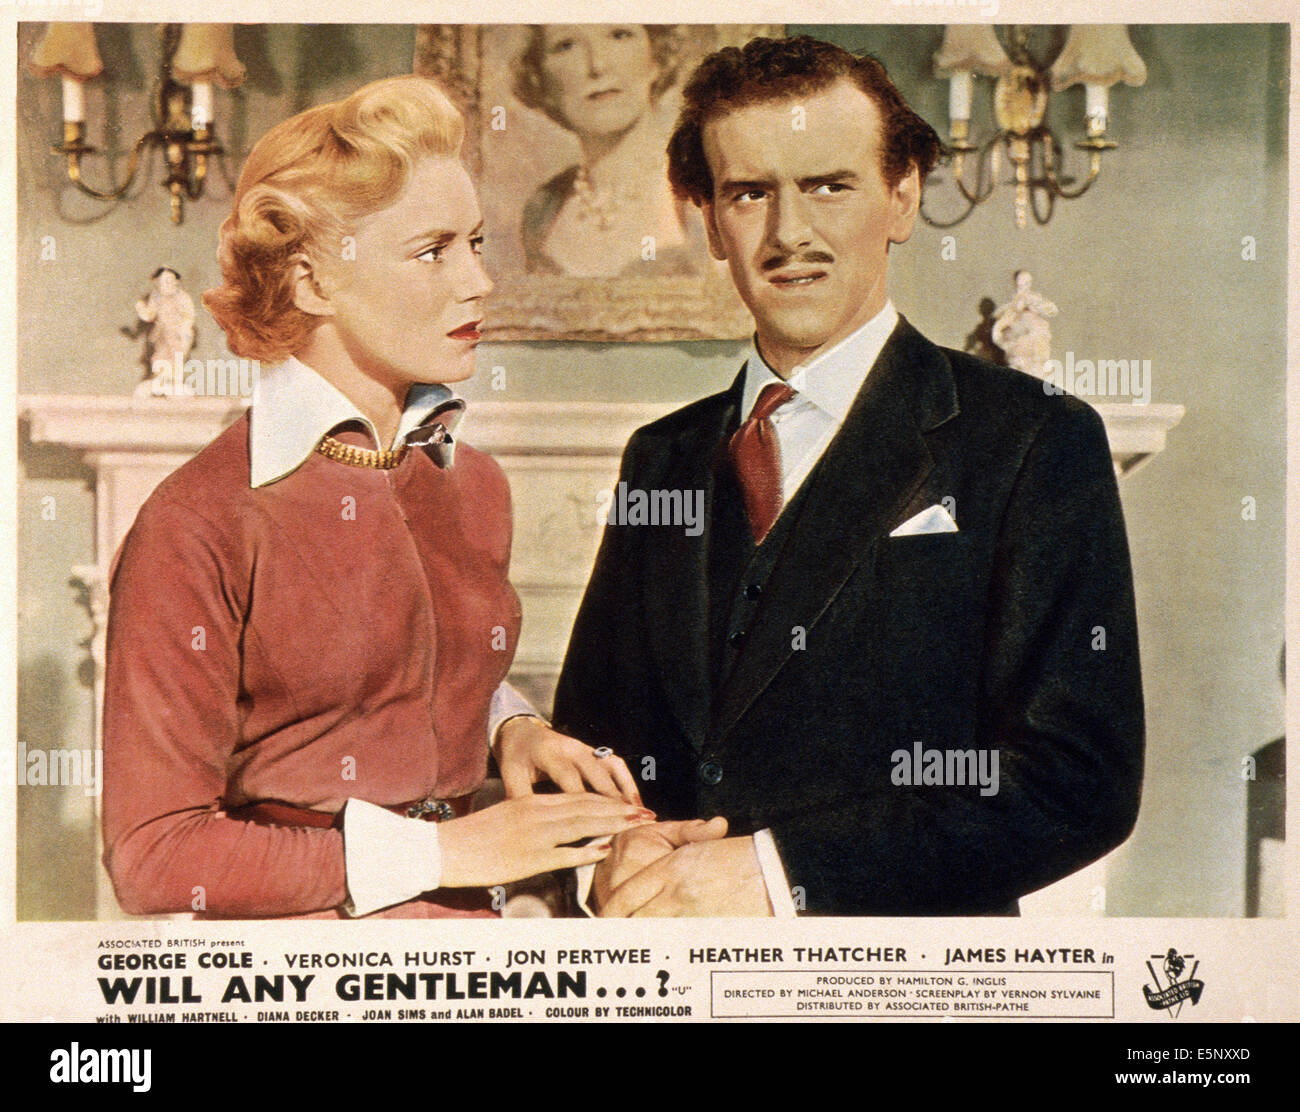 WILL ANY GENTLEMAN...?, British lobbycard, from left: Veronica Hurst, George Cole, 1953 - Stock Image